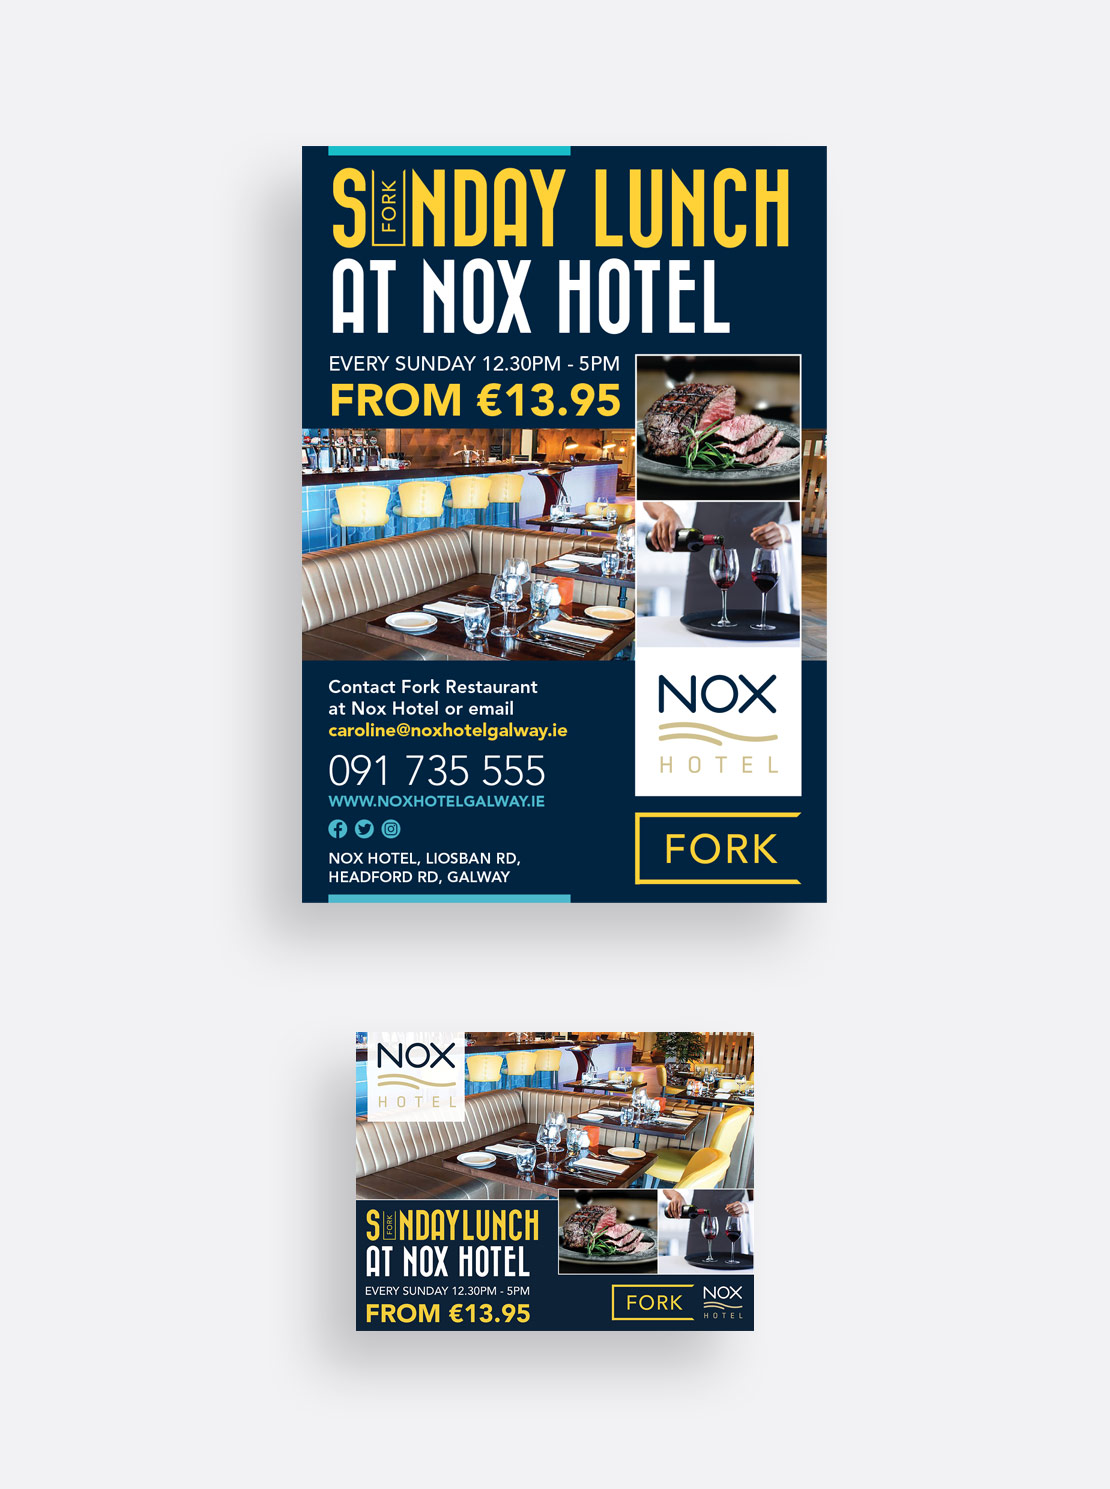 Nox Hotel 'Sunday Lunch' print and social media campaign